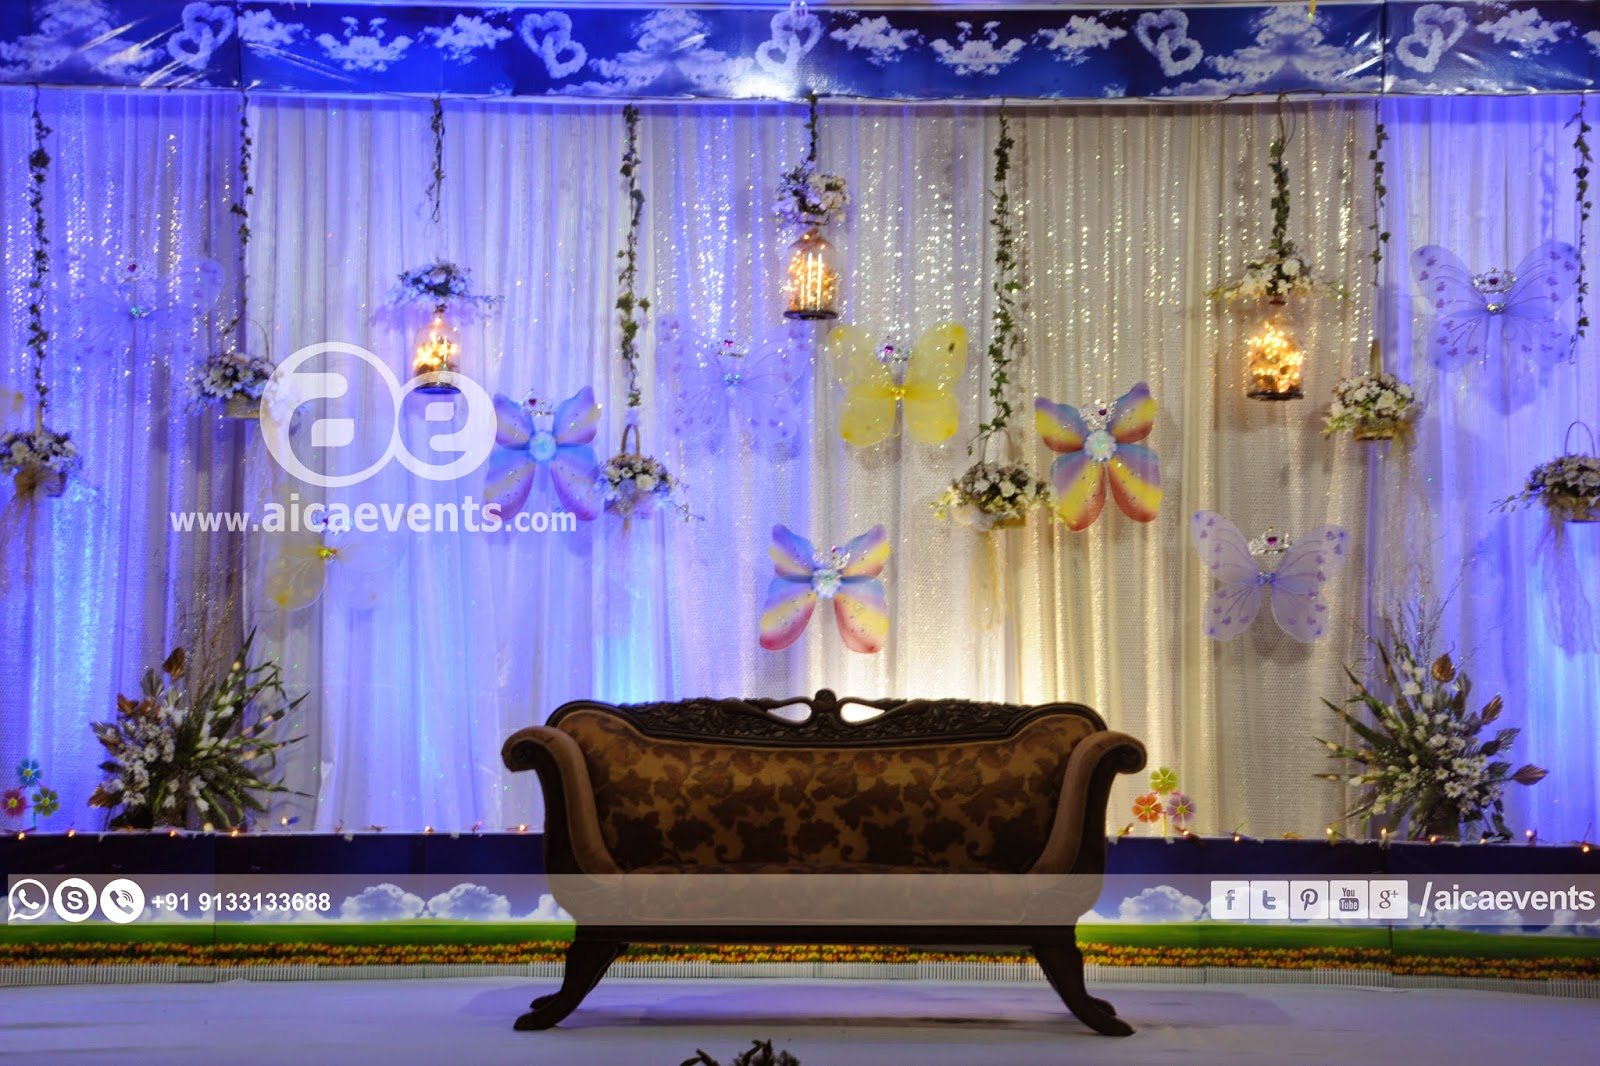 Aicaevents butterfly theme birthday party ideas for Backdrop decoration for birthday